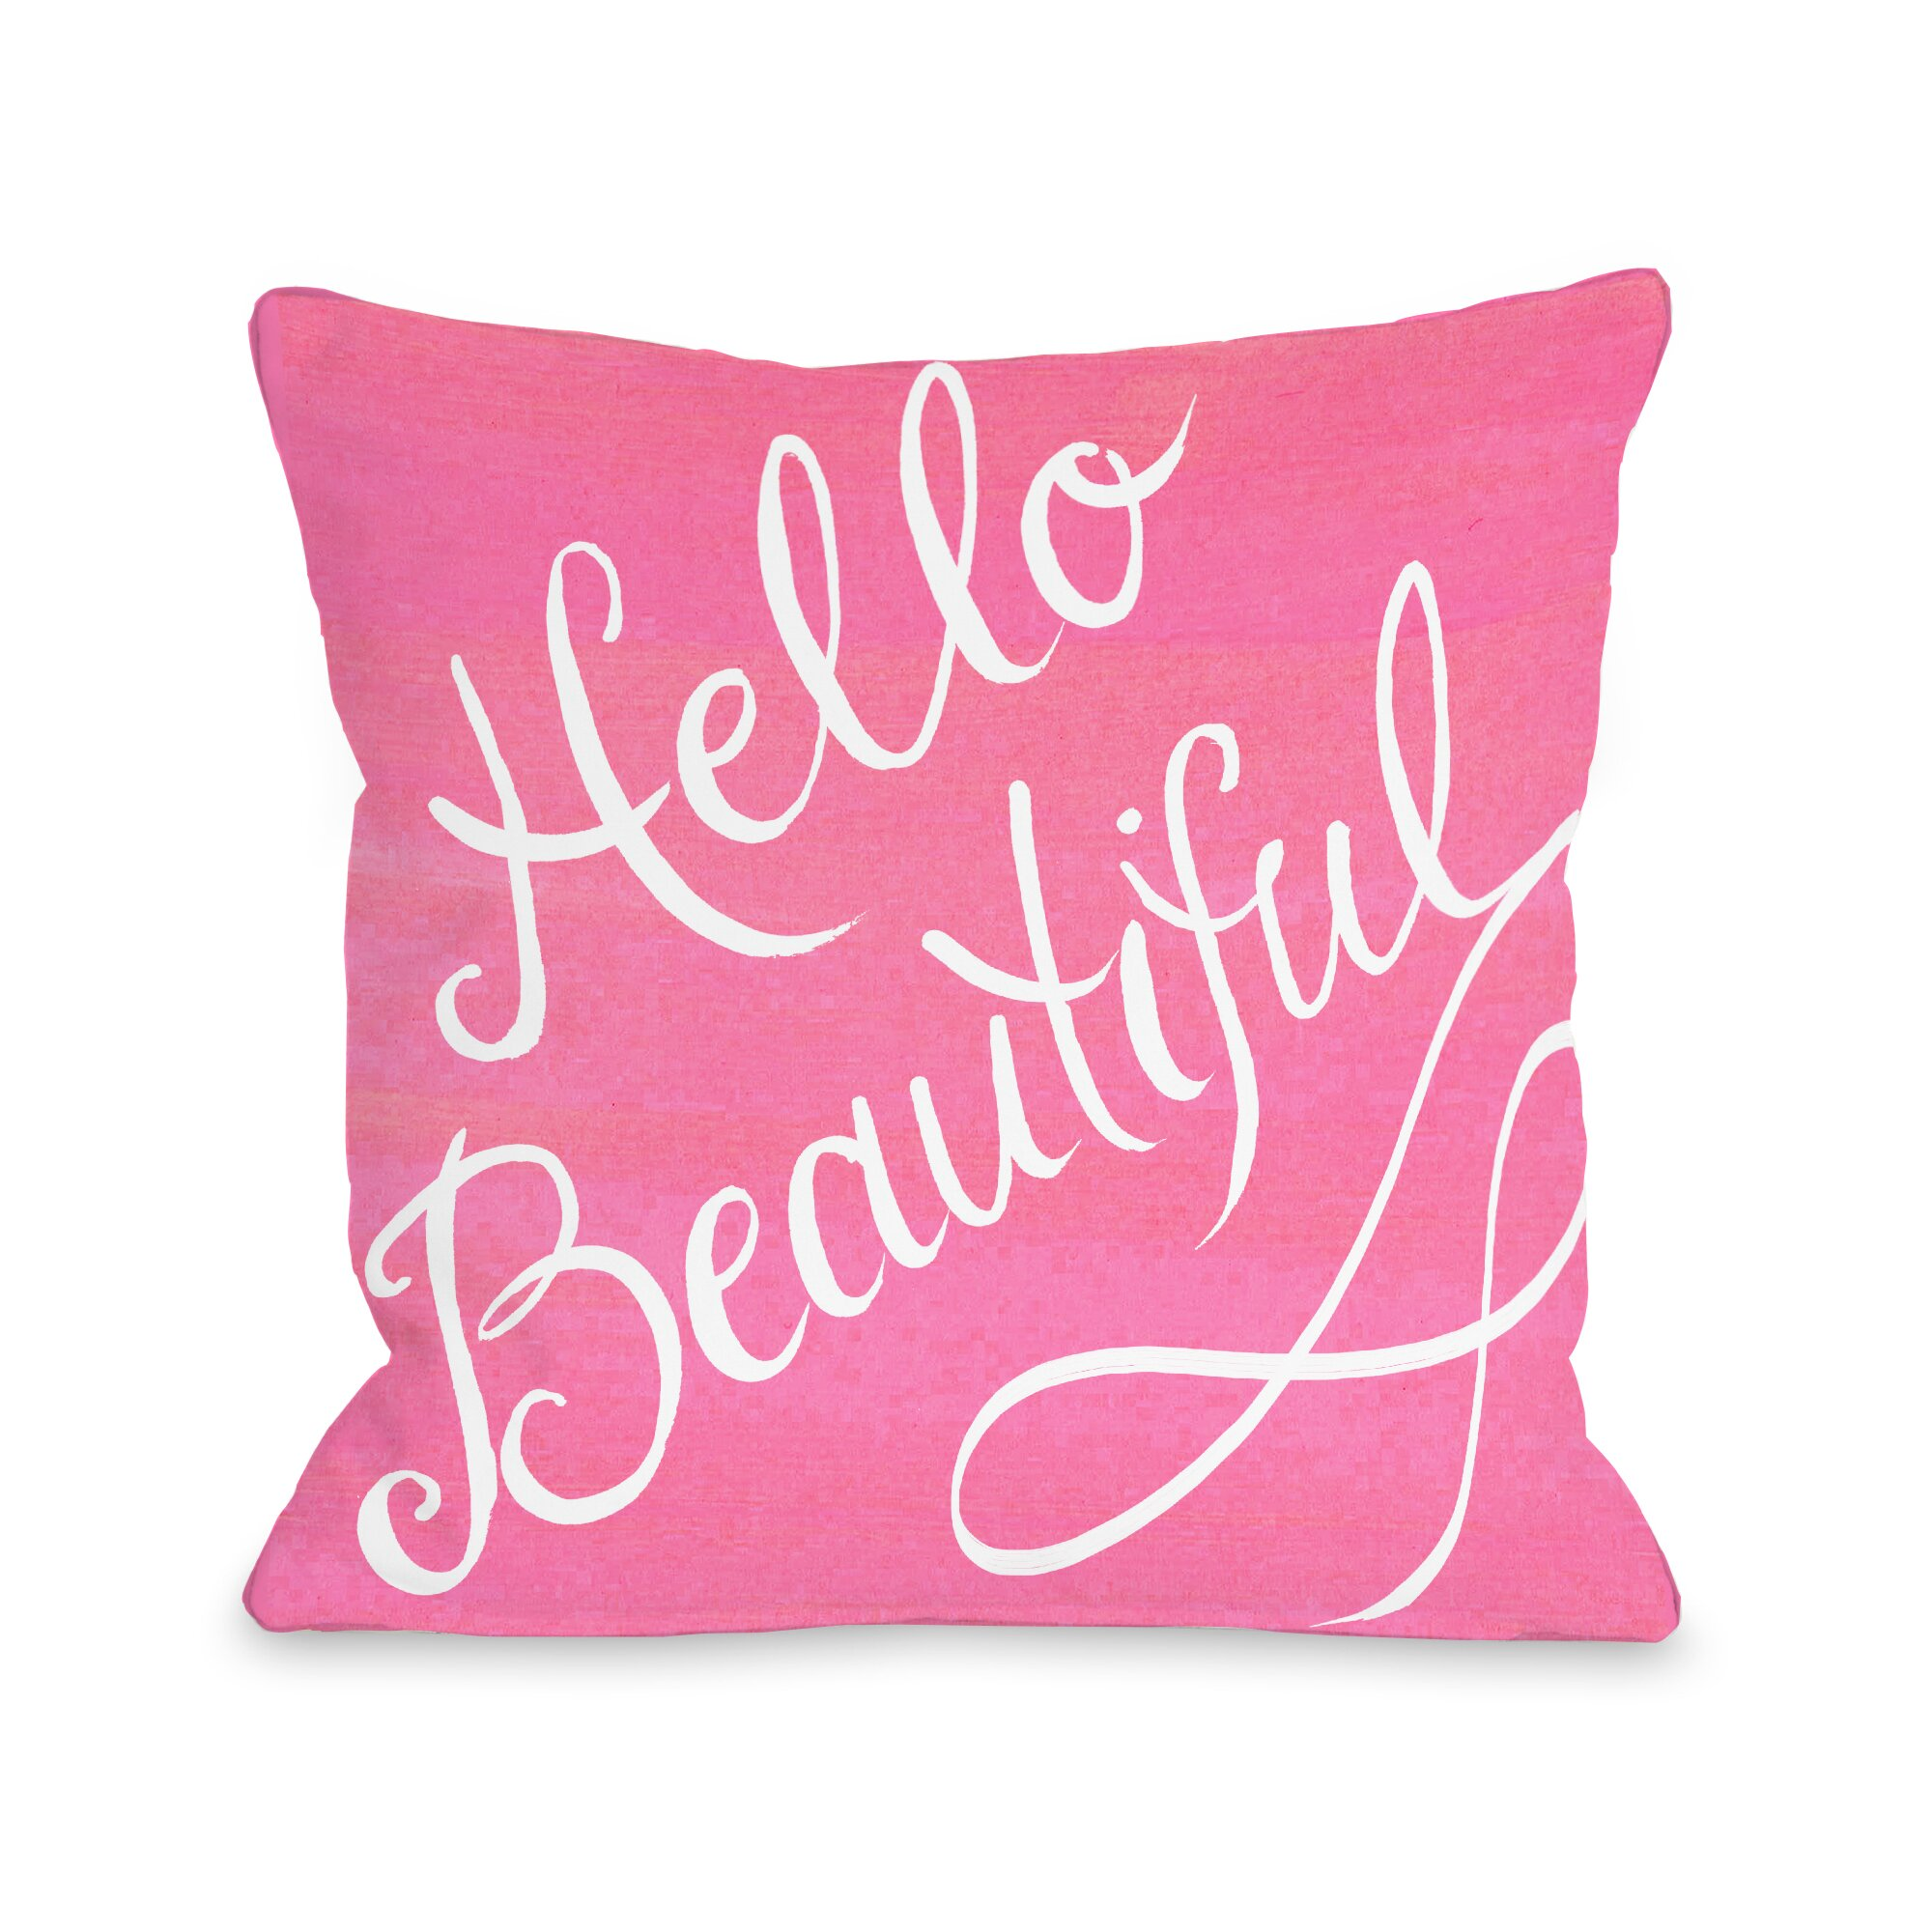 Hello Beautiful Decorative Pillow : One Bella Casa Hello Beautiful Bow Throw Pillow & Reviews Wayfair